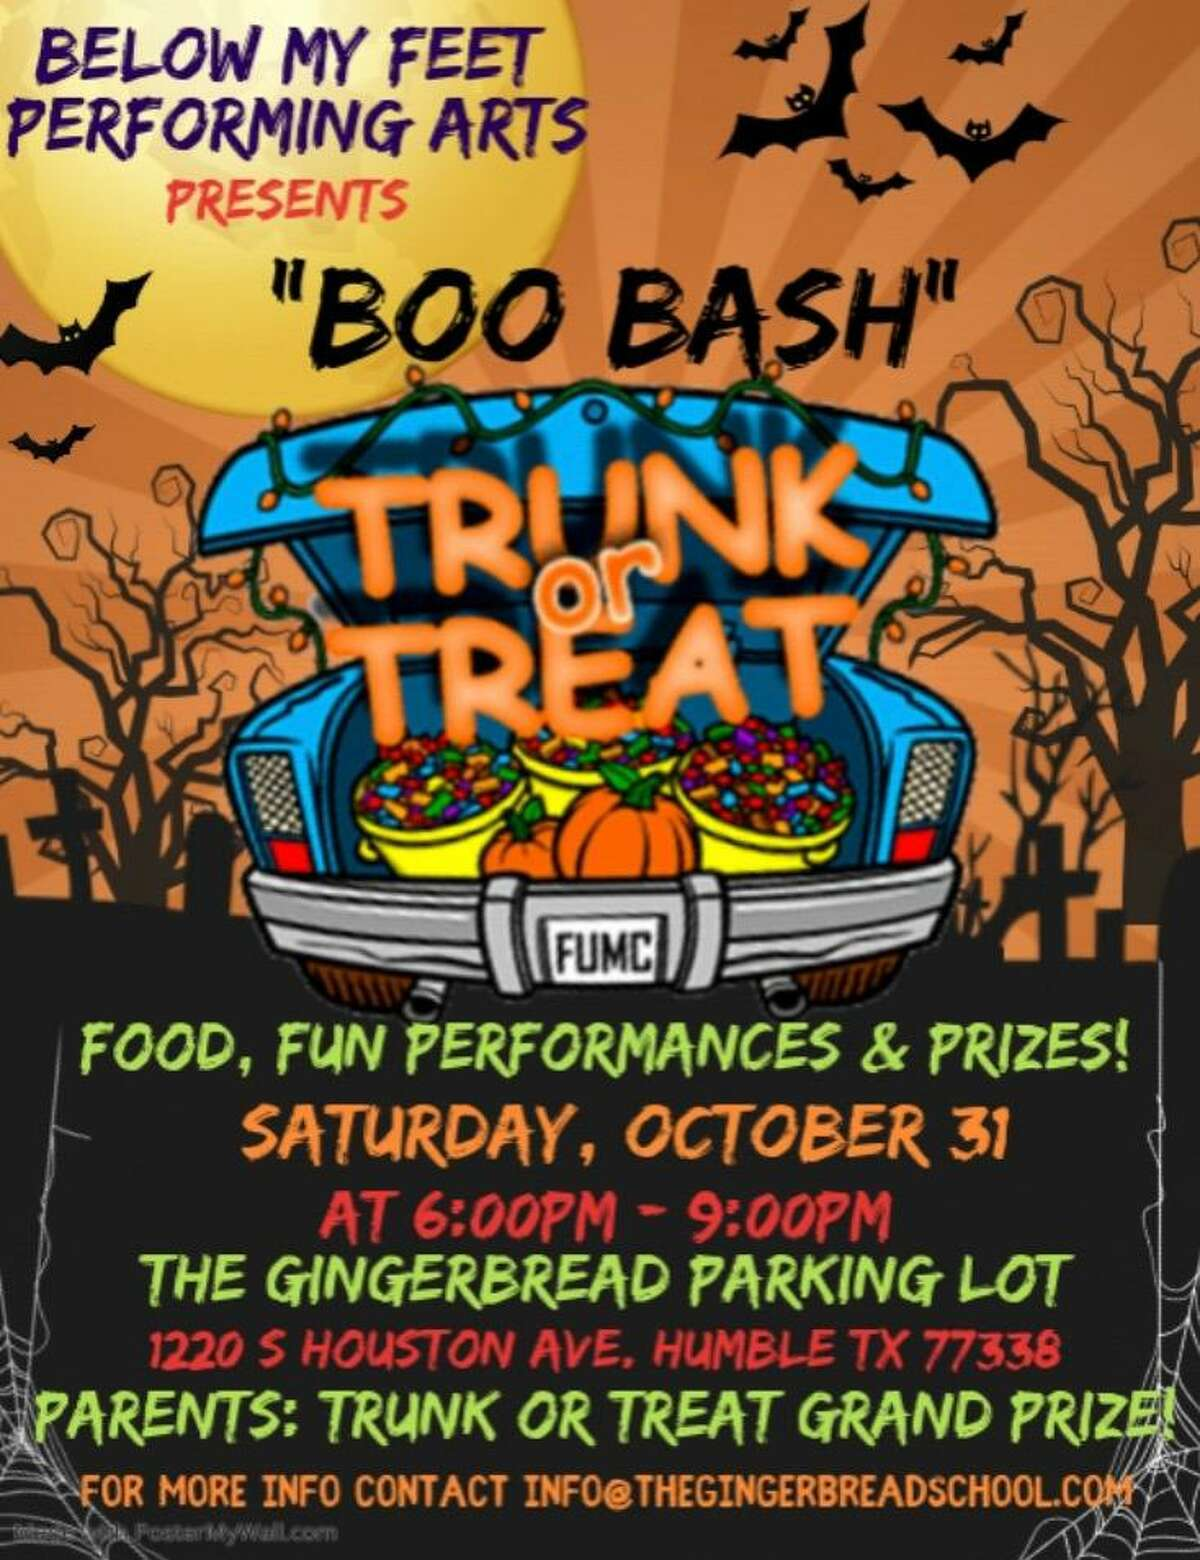 Boo Bash Trunk or Treat will be on Saturday, October 31st from 6 p.m. - 9 p.m. at the Gingerbread School parking lot, located at 1220 S Houston Ave.